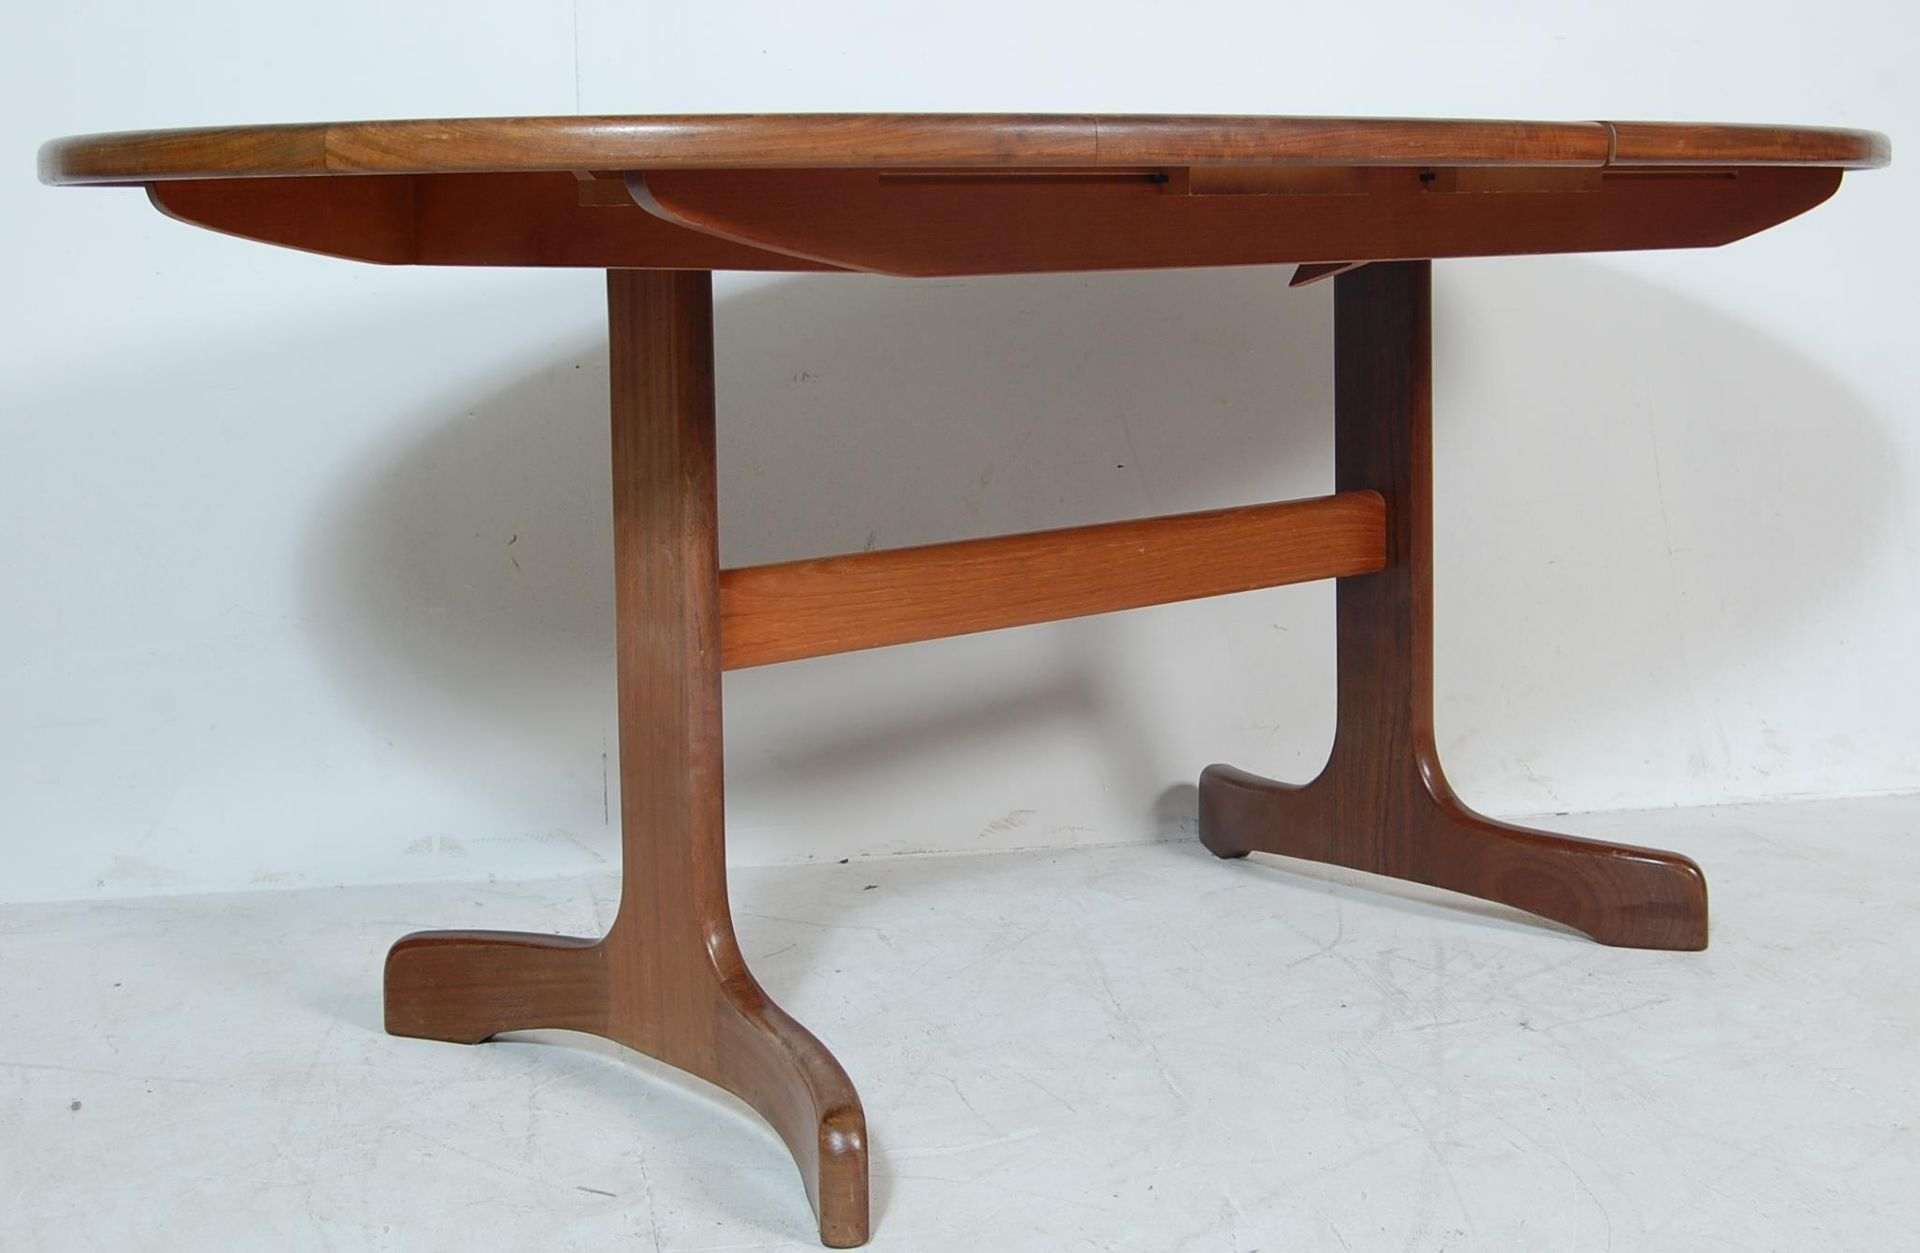 RETRO VINTAGE 1970S GPLAN DINING TABLE AND CHAIRS - Image 2 of 12